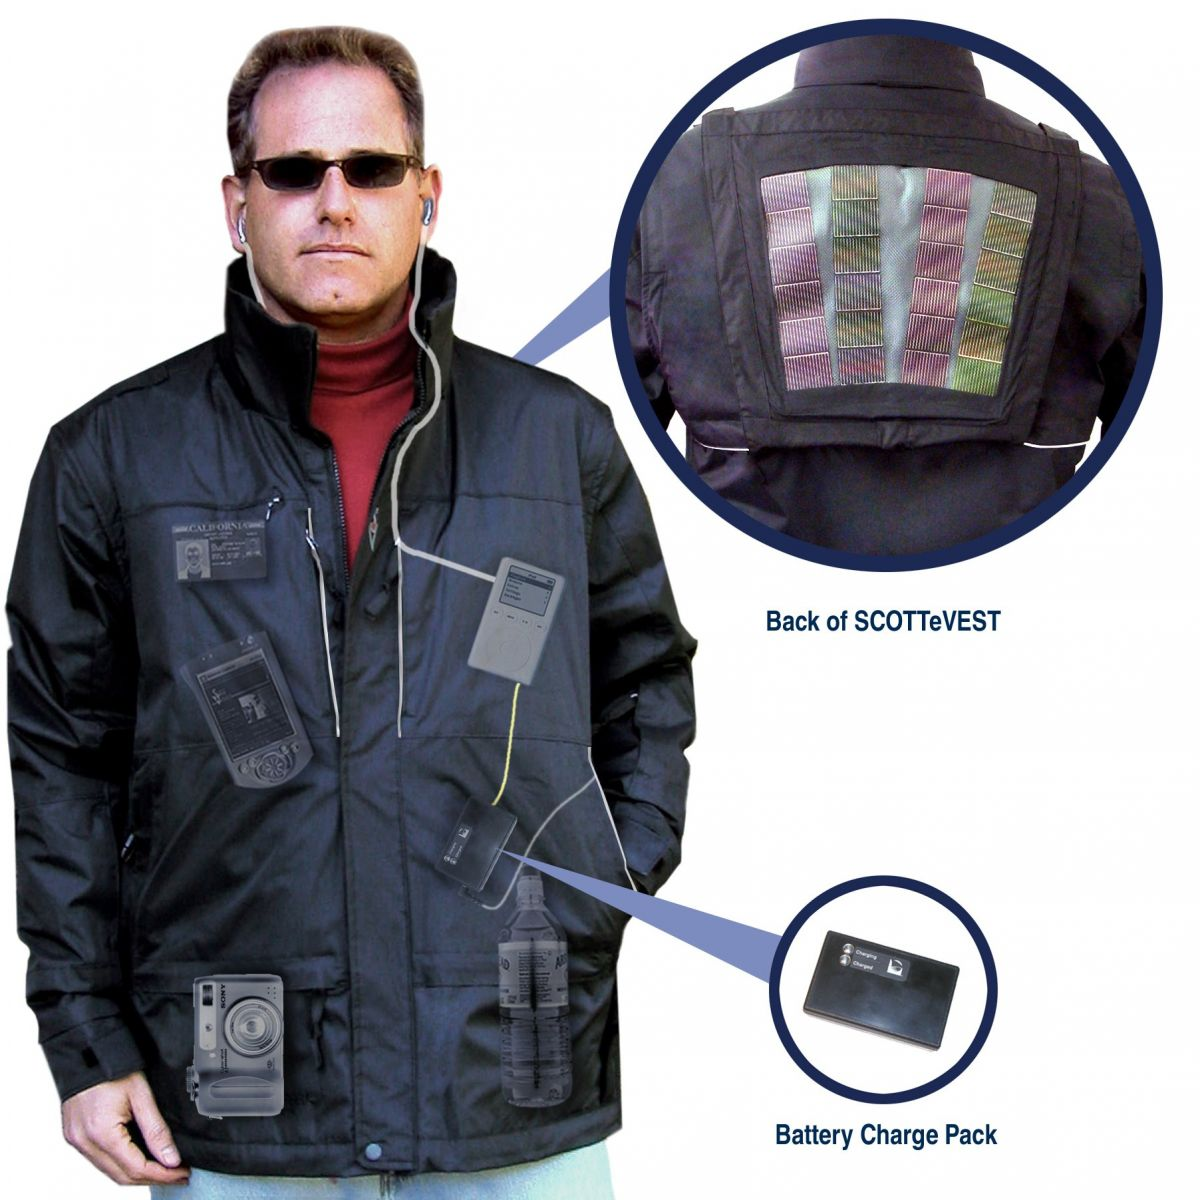 ScotteVest Solar Jacket